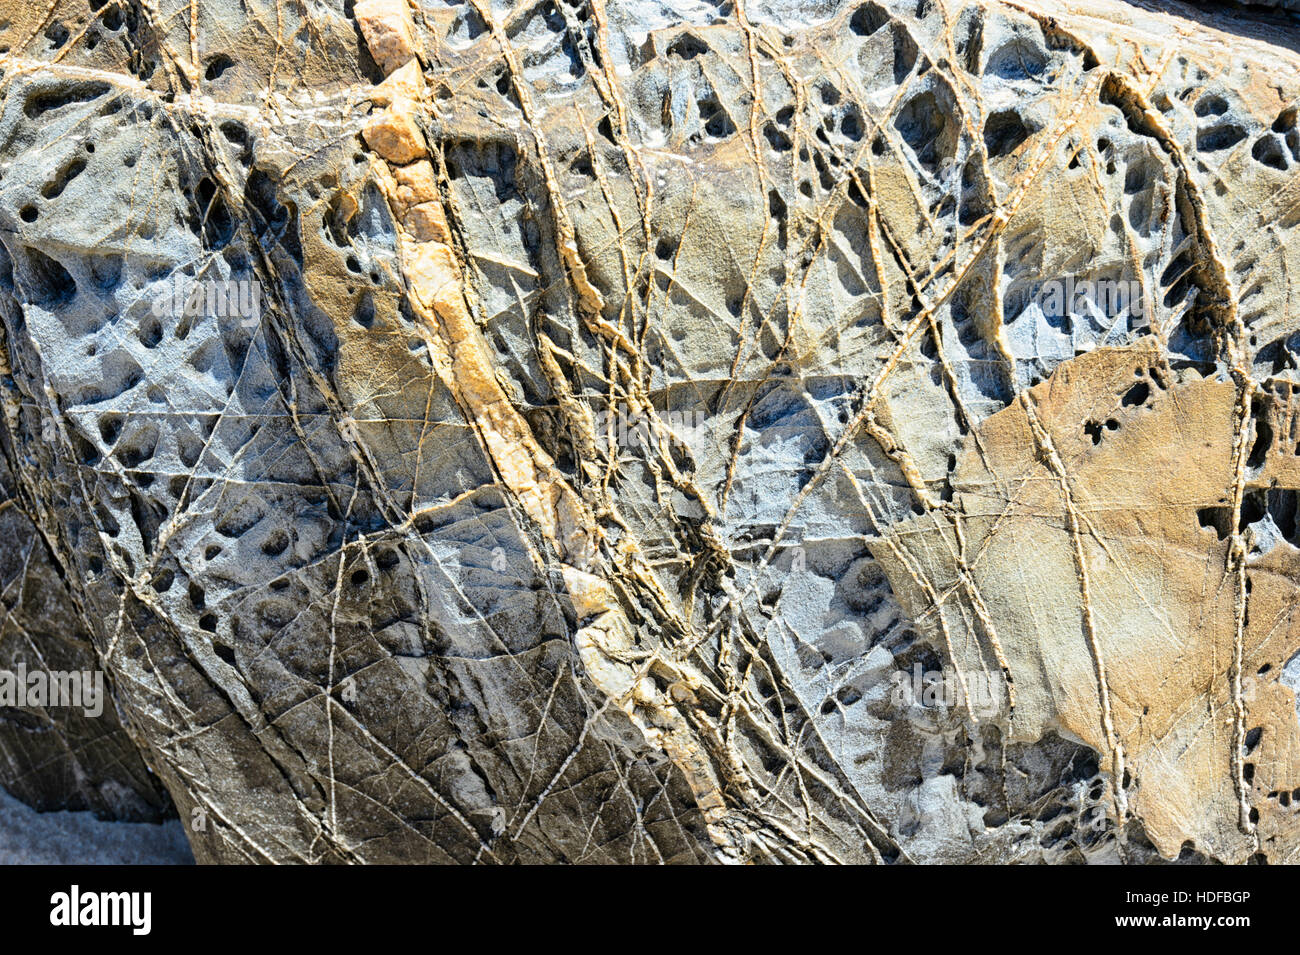 Fretworks of quartz veins etched from the sandstone, Quarry Beach, Mallacoota, Victoria, Australia It is a site - Stock Image